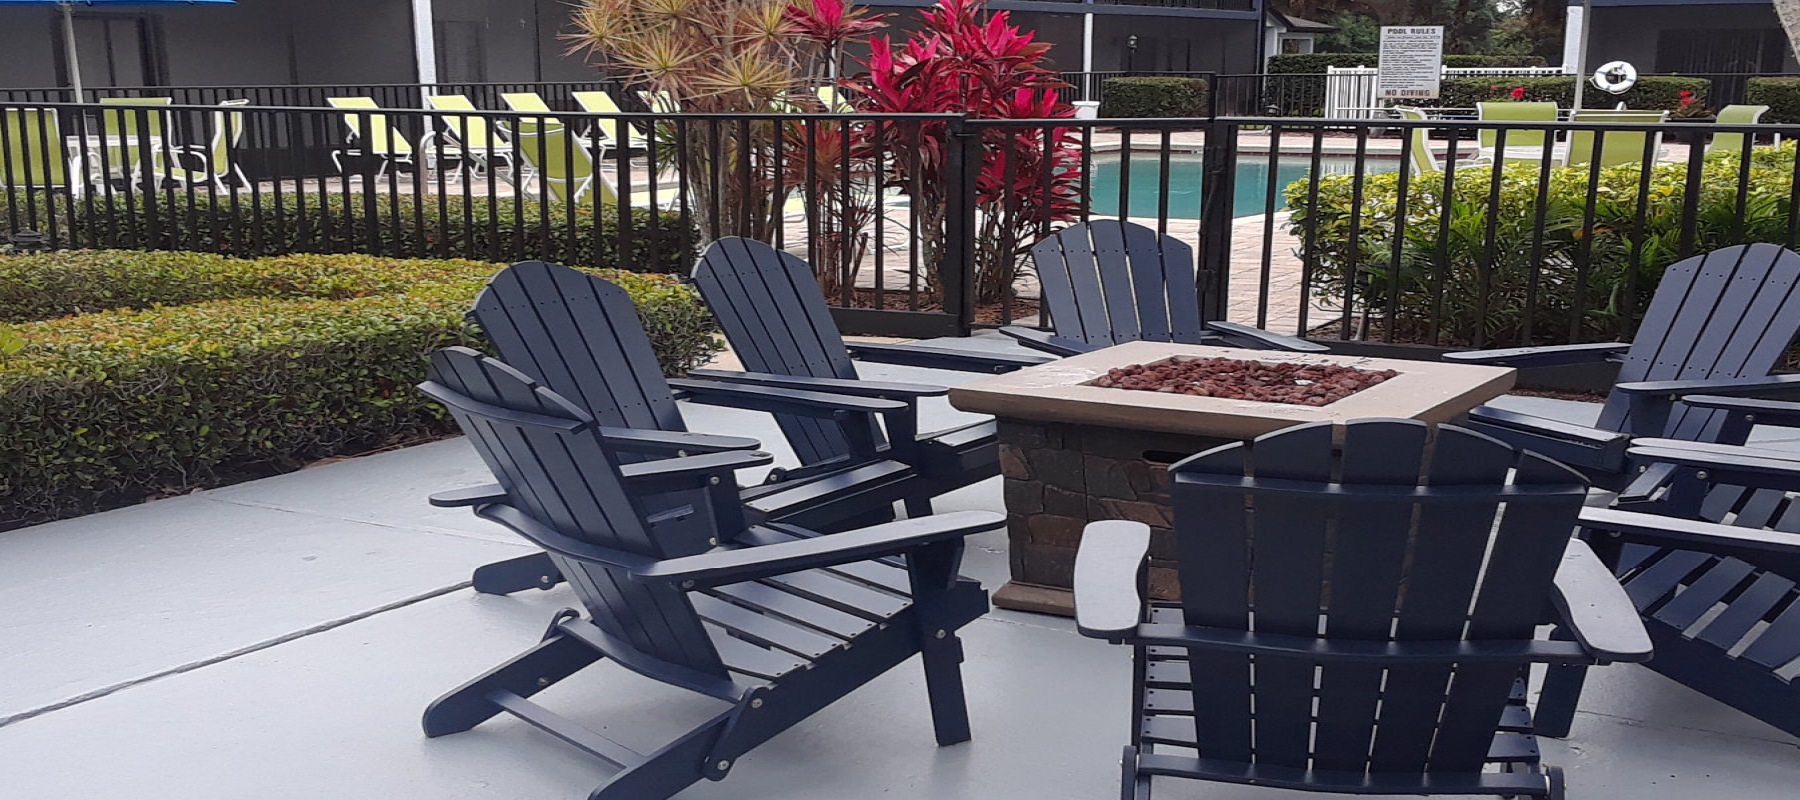 conversation area poolside with firepit